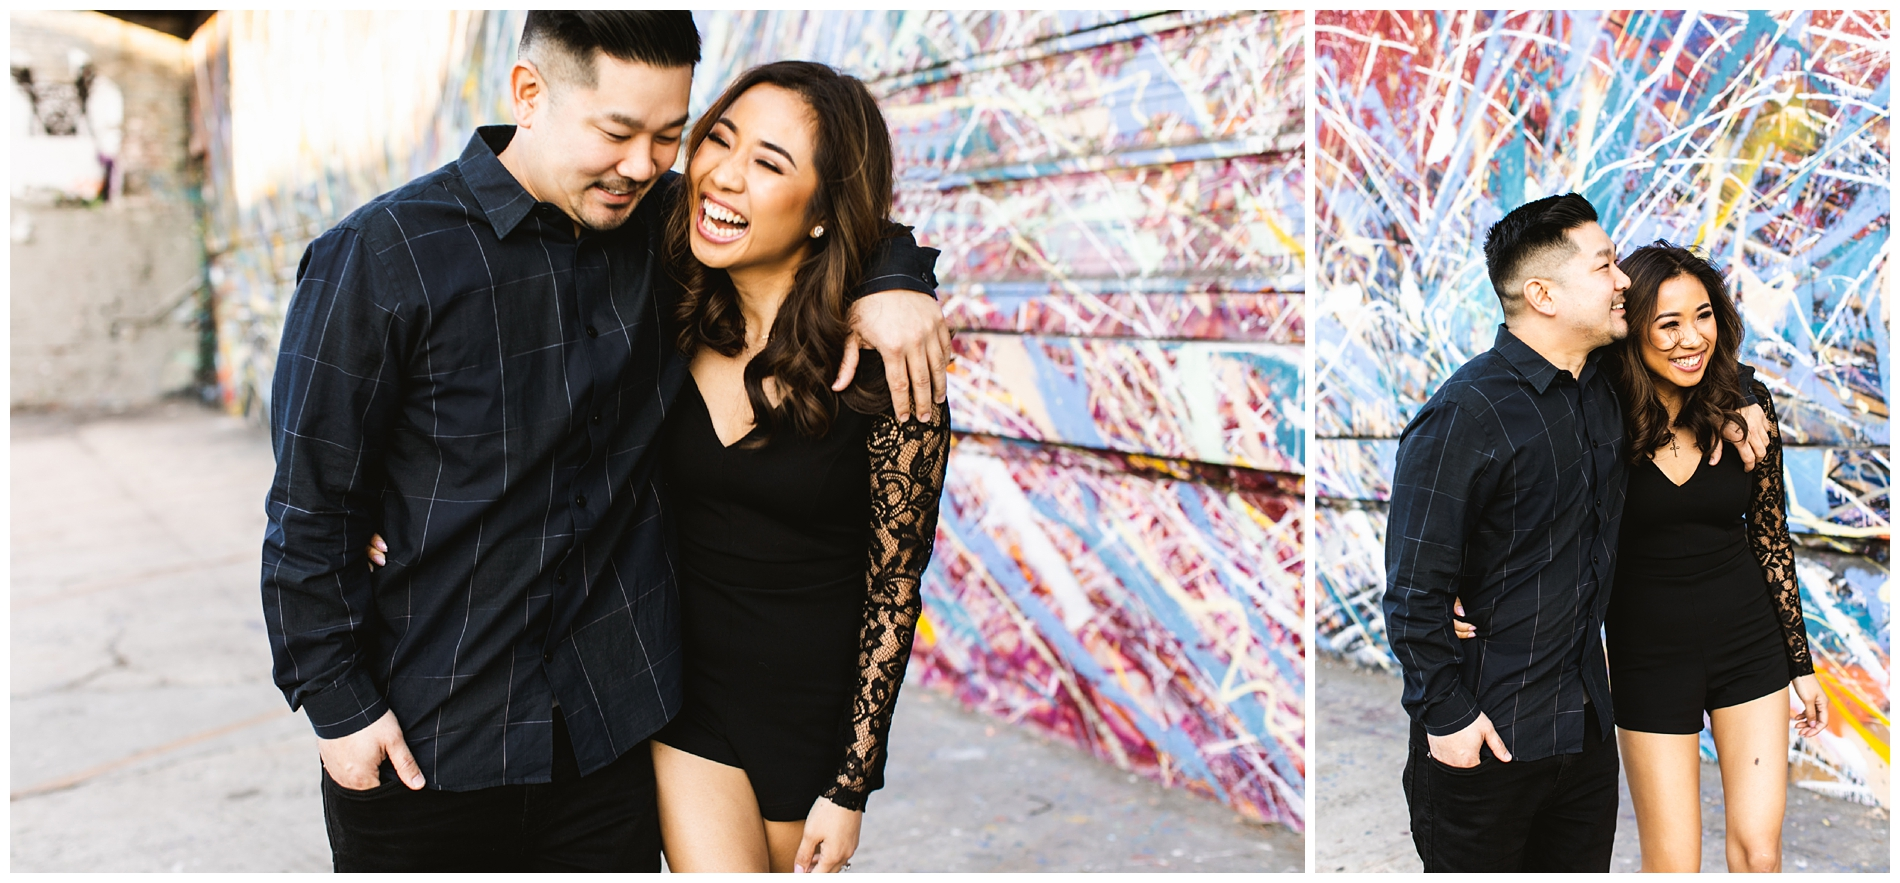 Downtown Los Angeles Engagement Photography_0015.jpg